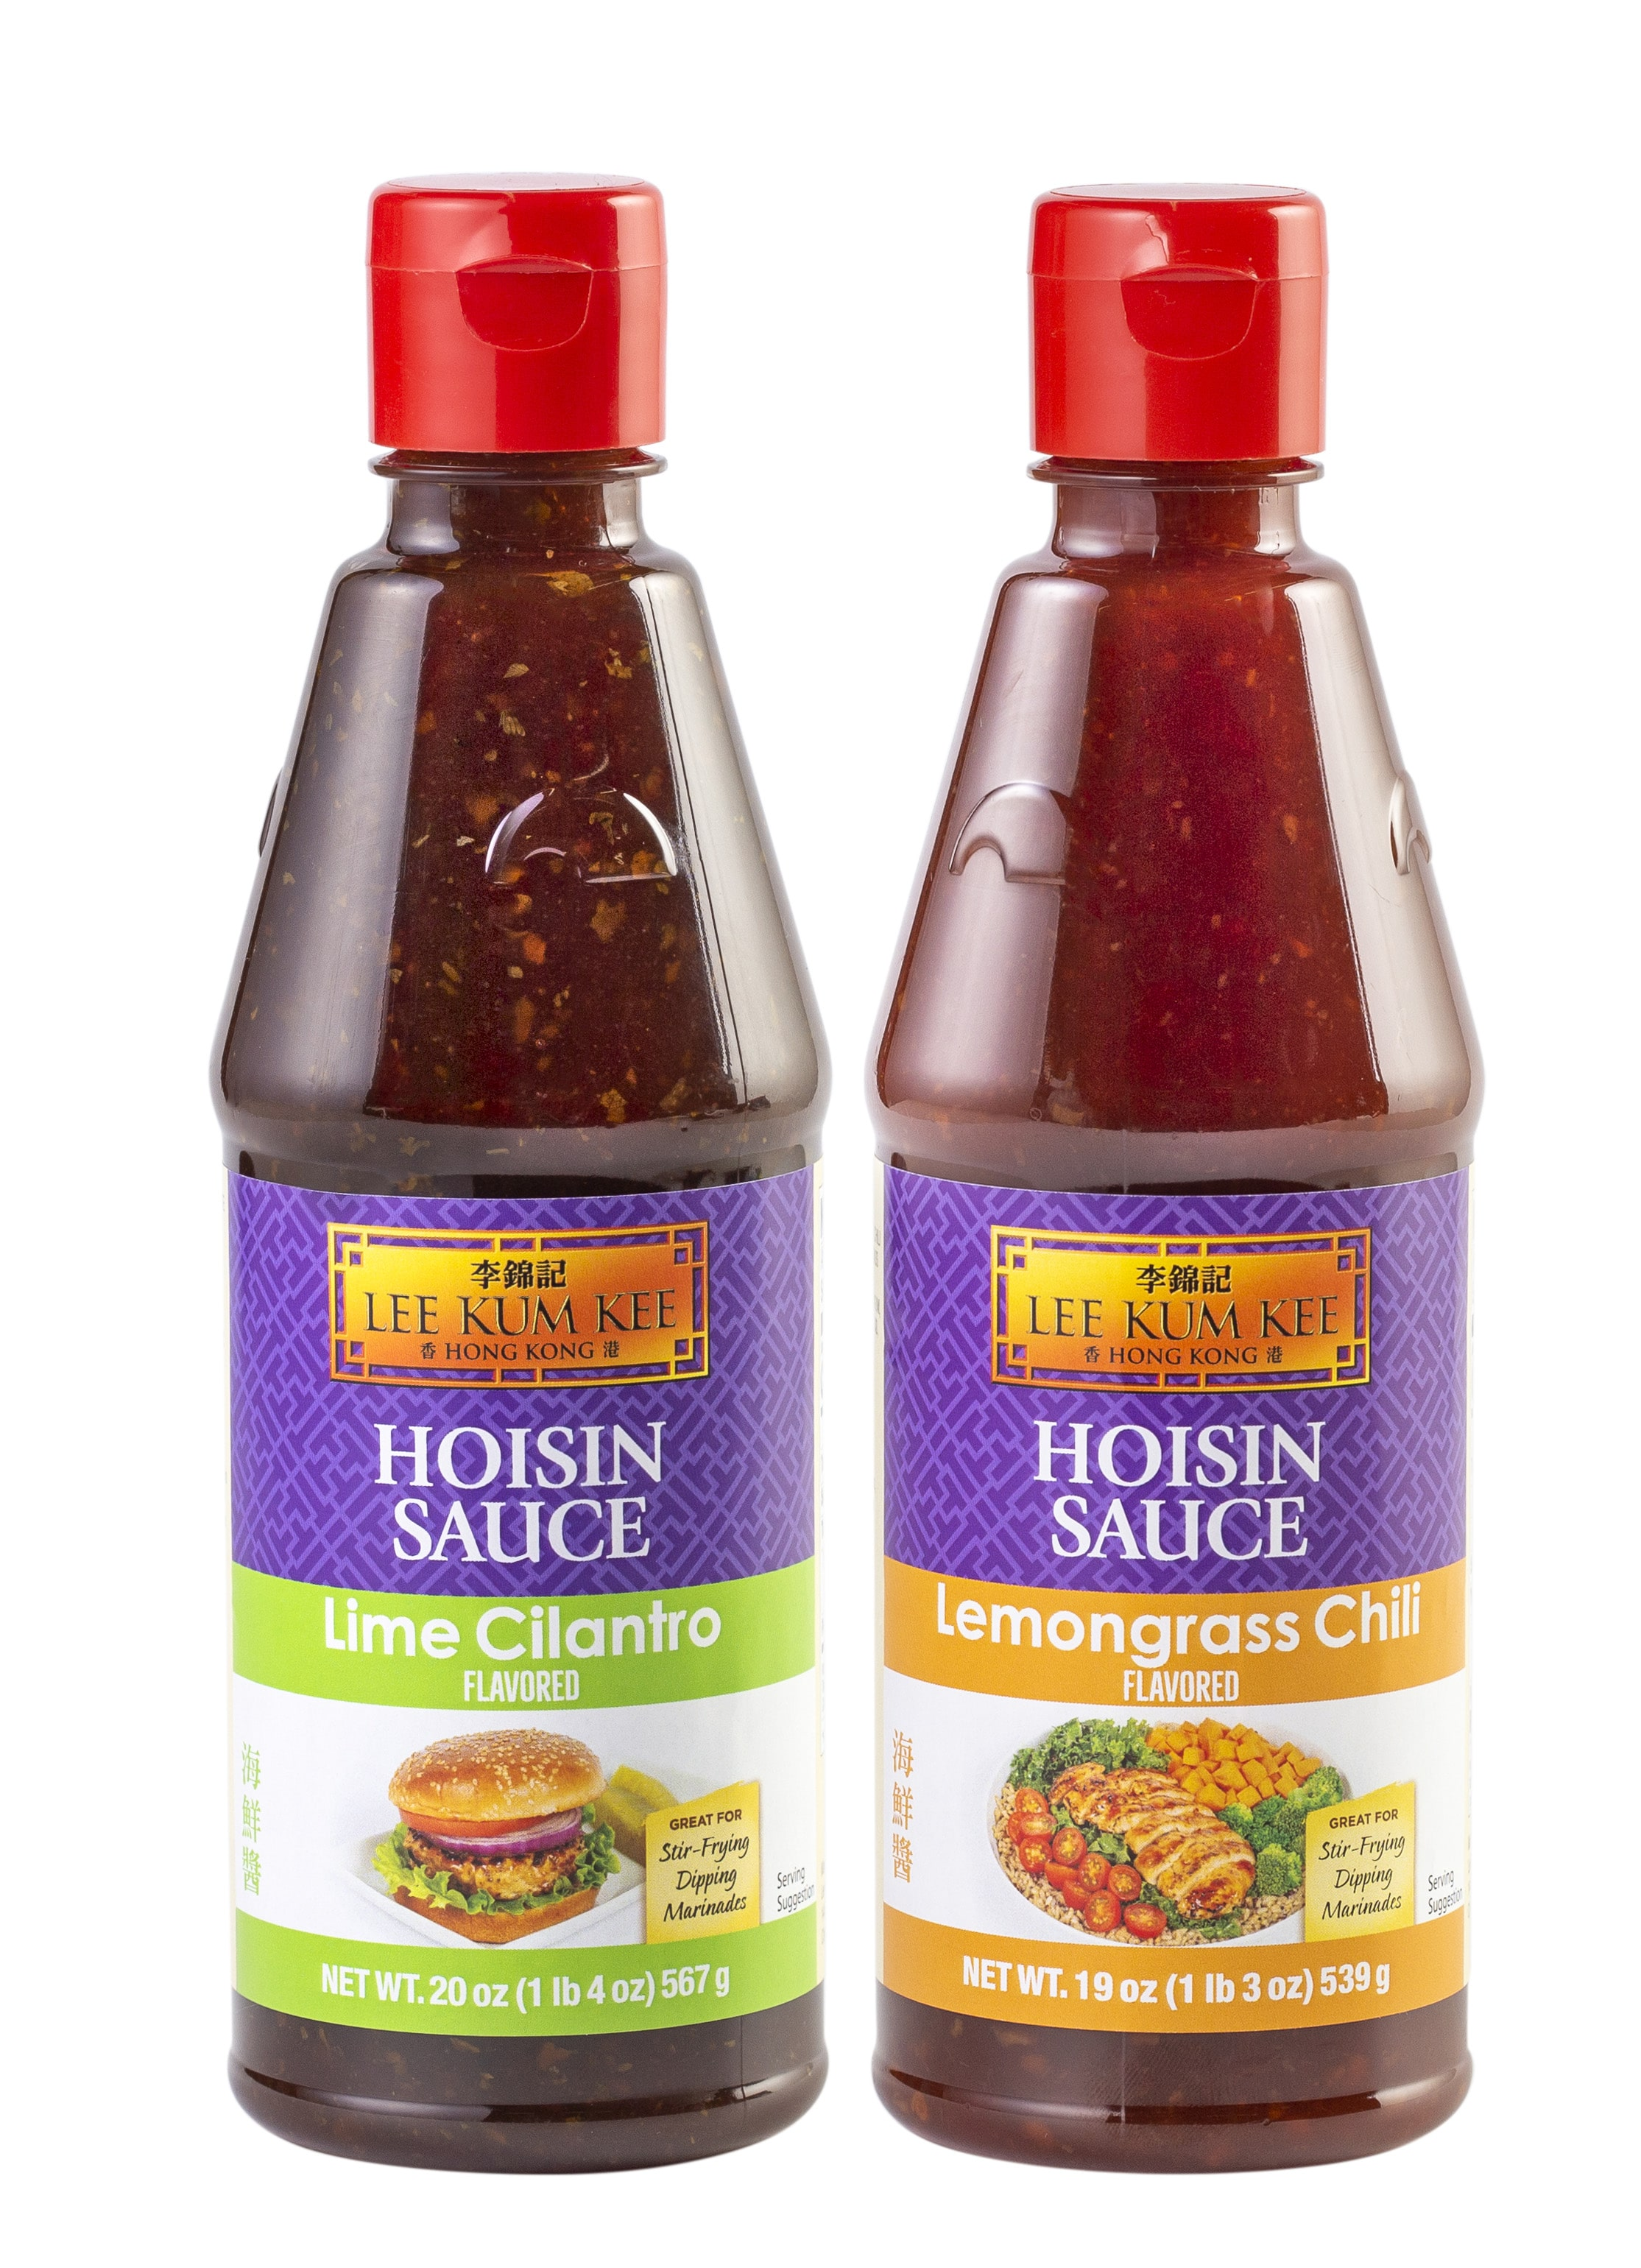 Lee Kum Kee Extends Line with New Flavored Hoisin Sauces